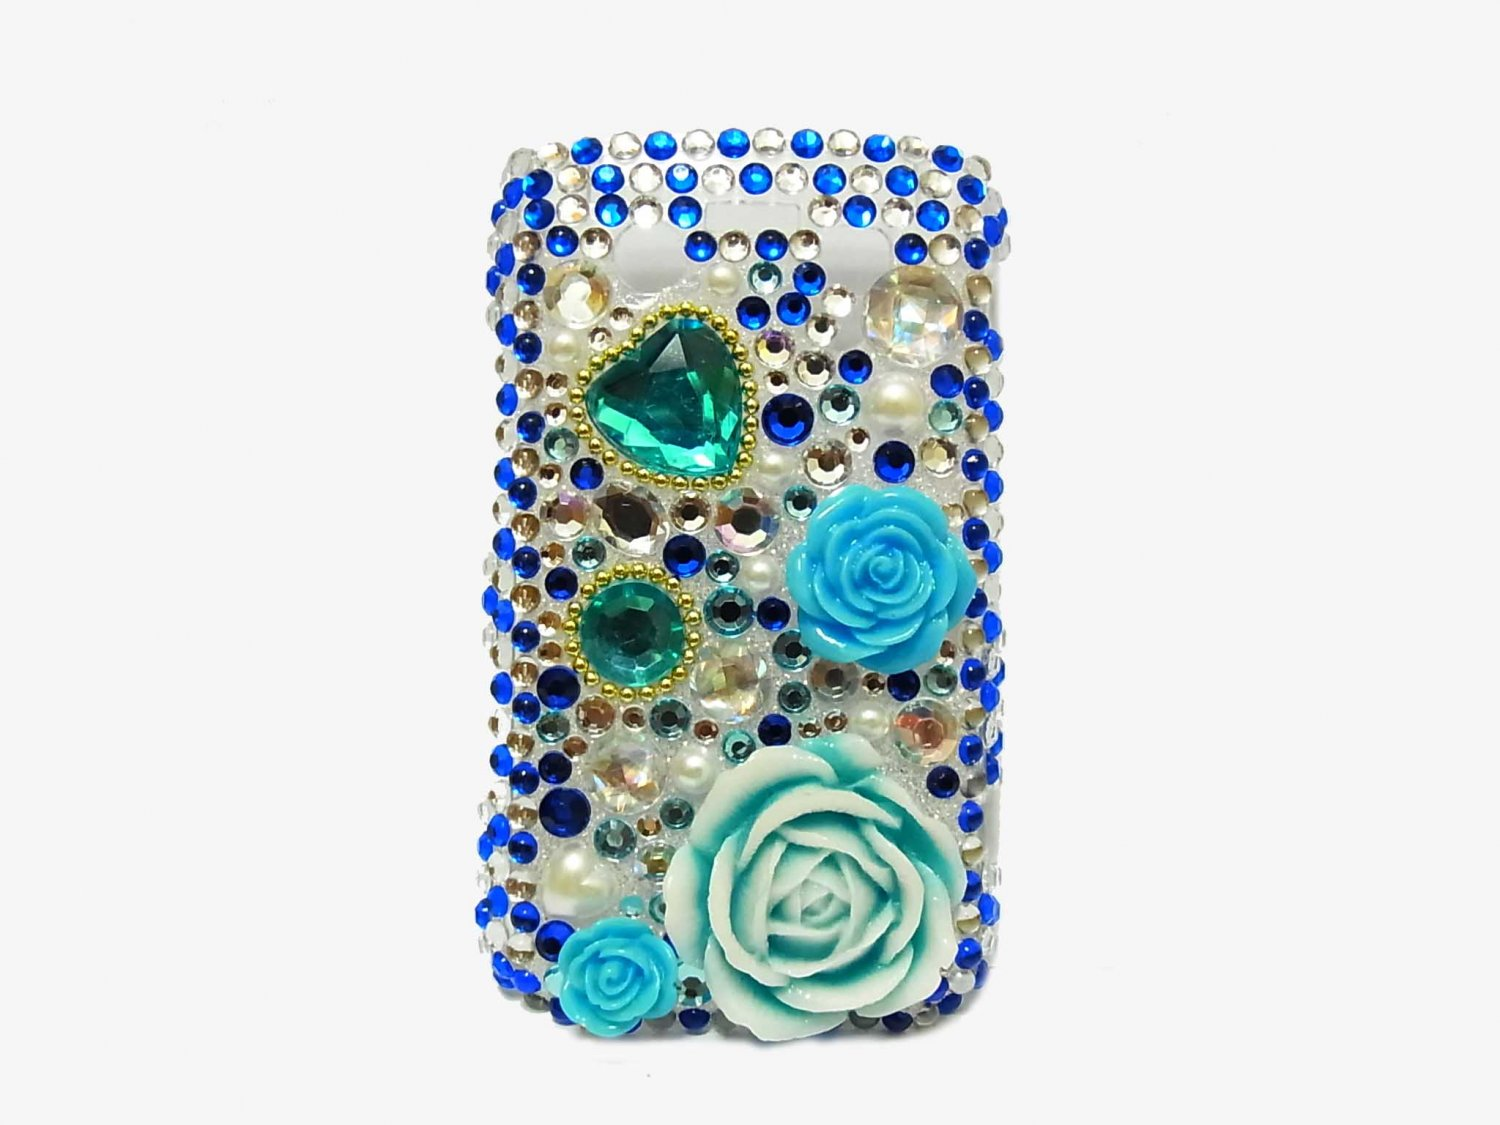 Bling Rhinestone Crystal Blue Flower Case Cover for Blackberry 9700 9780 Bold